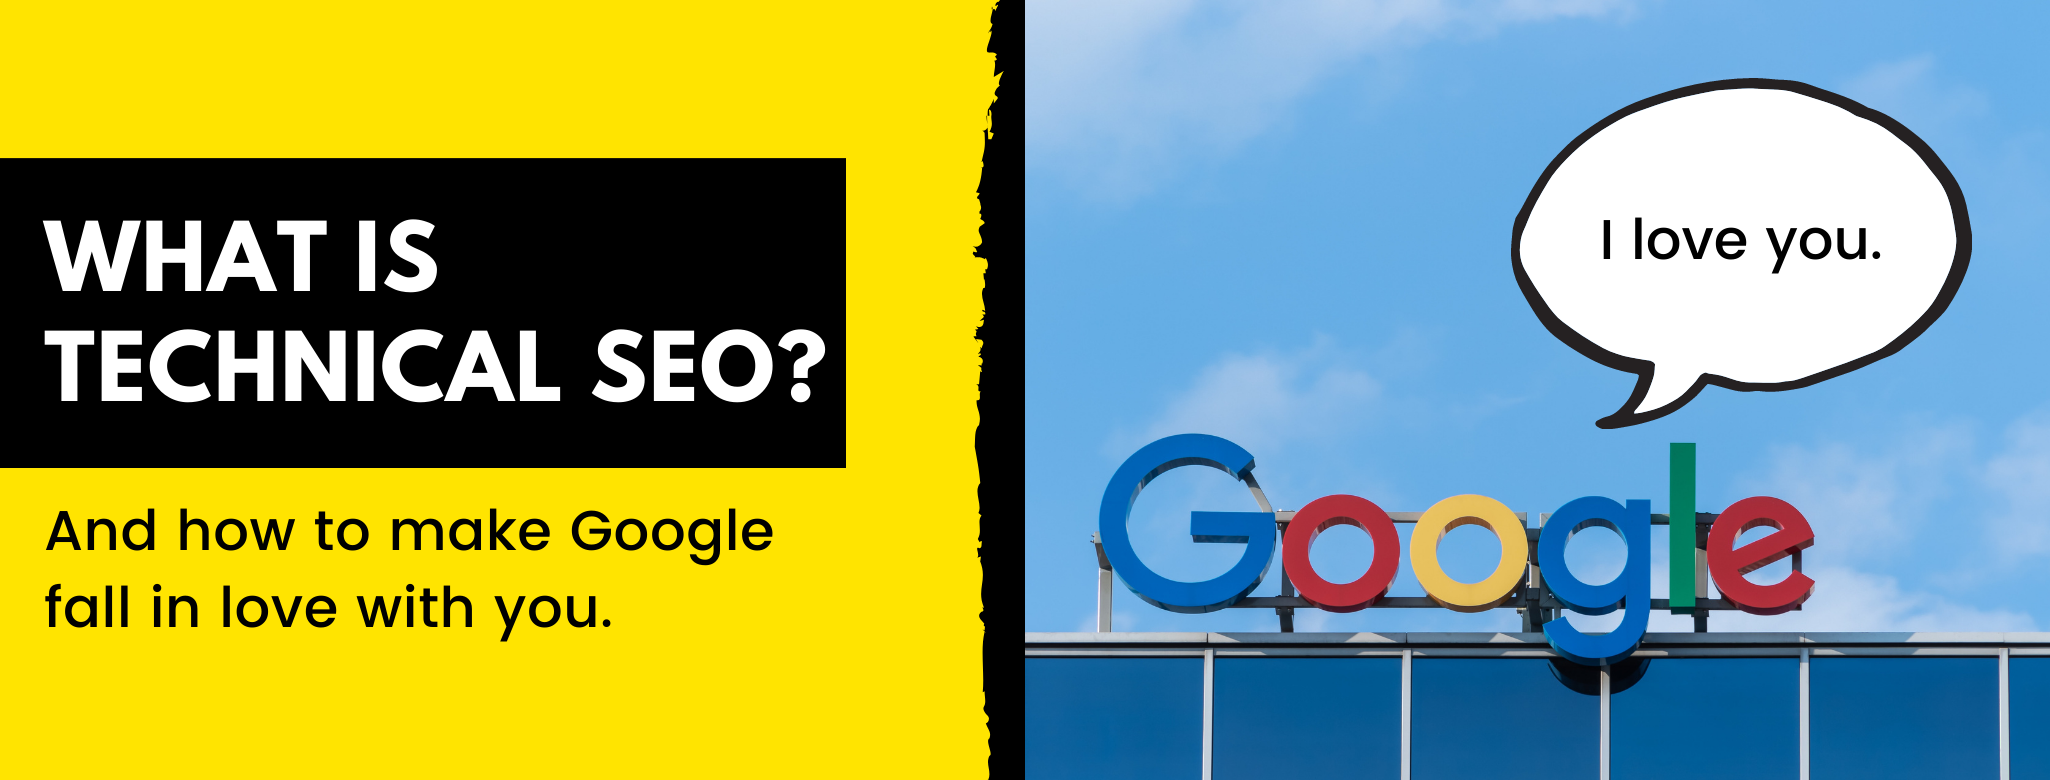 What is technical SEO? Make Google fall in love with your website.